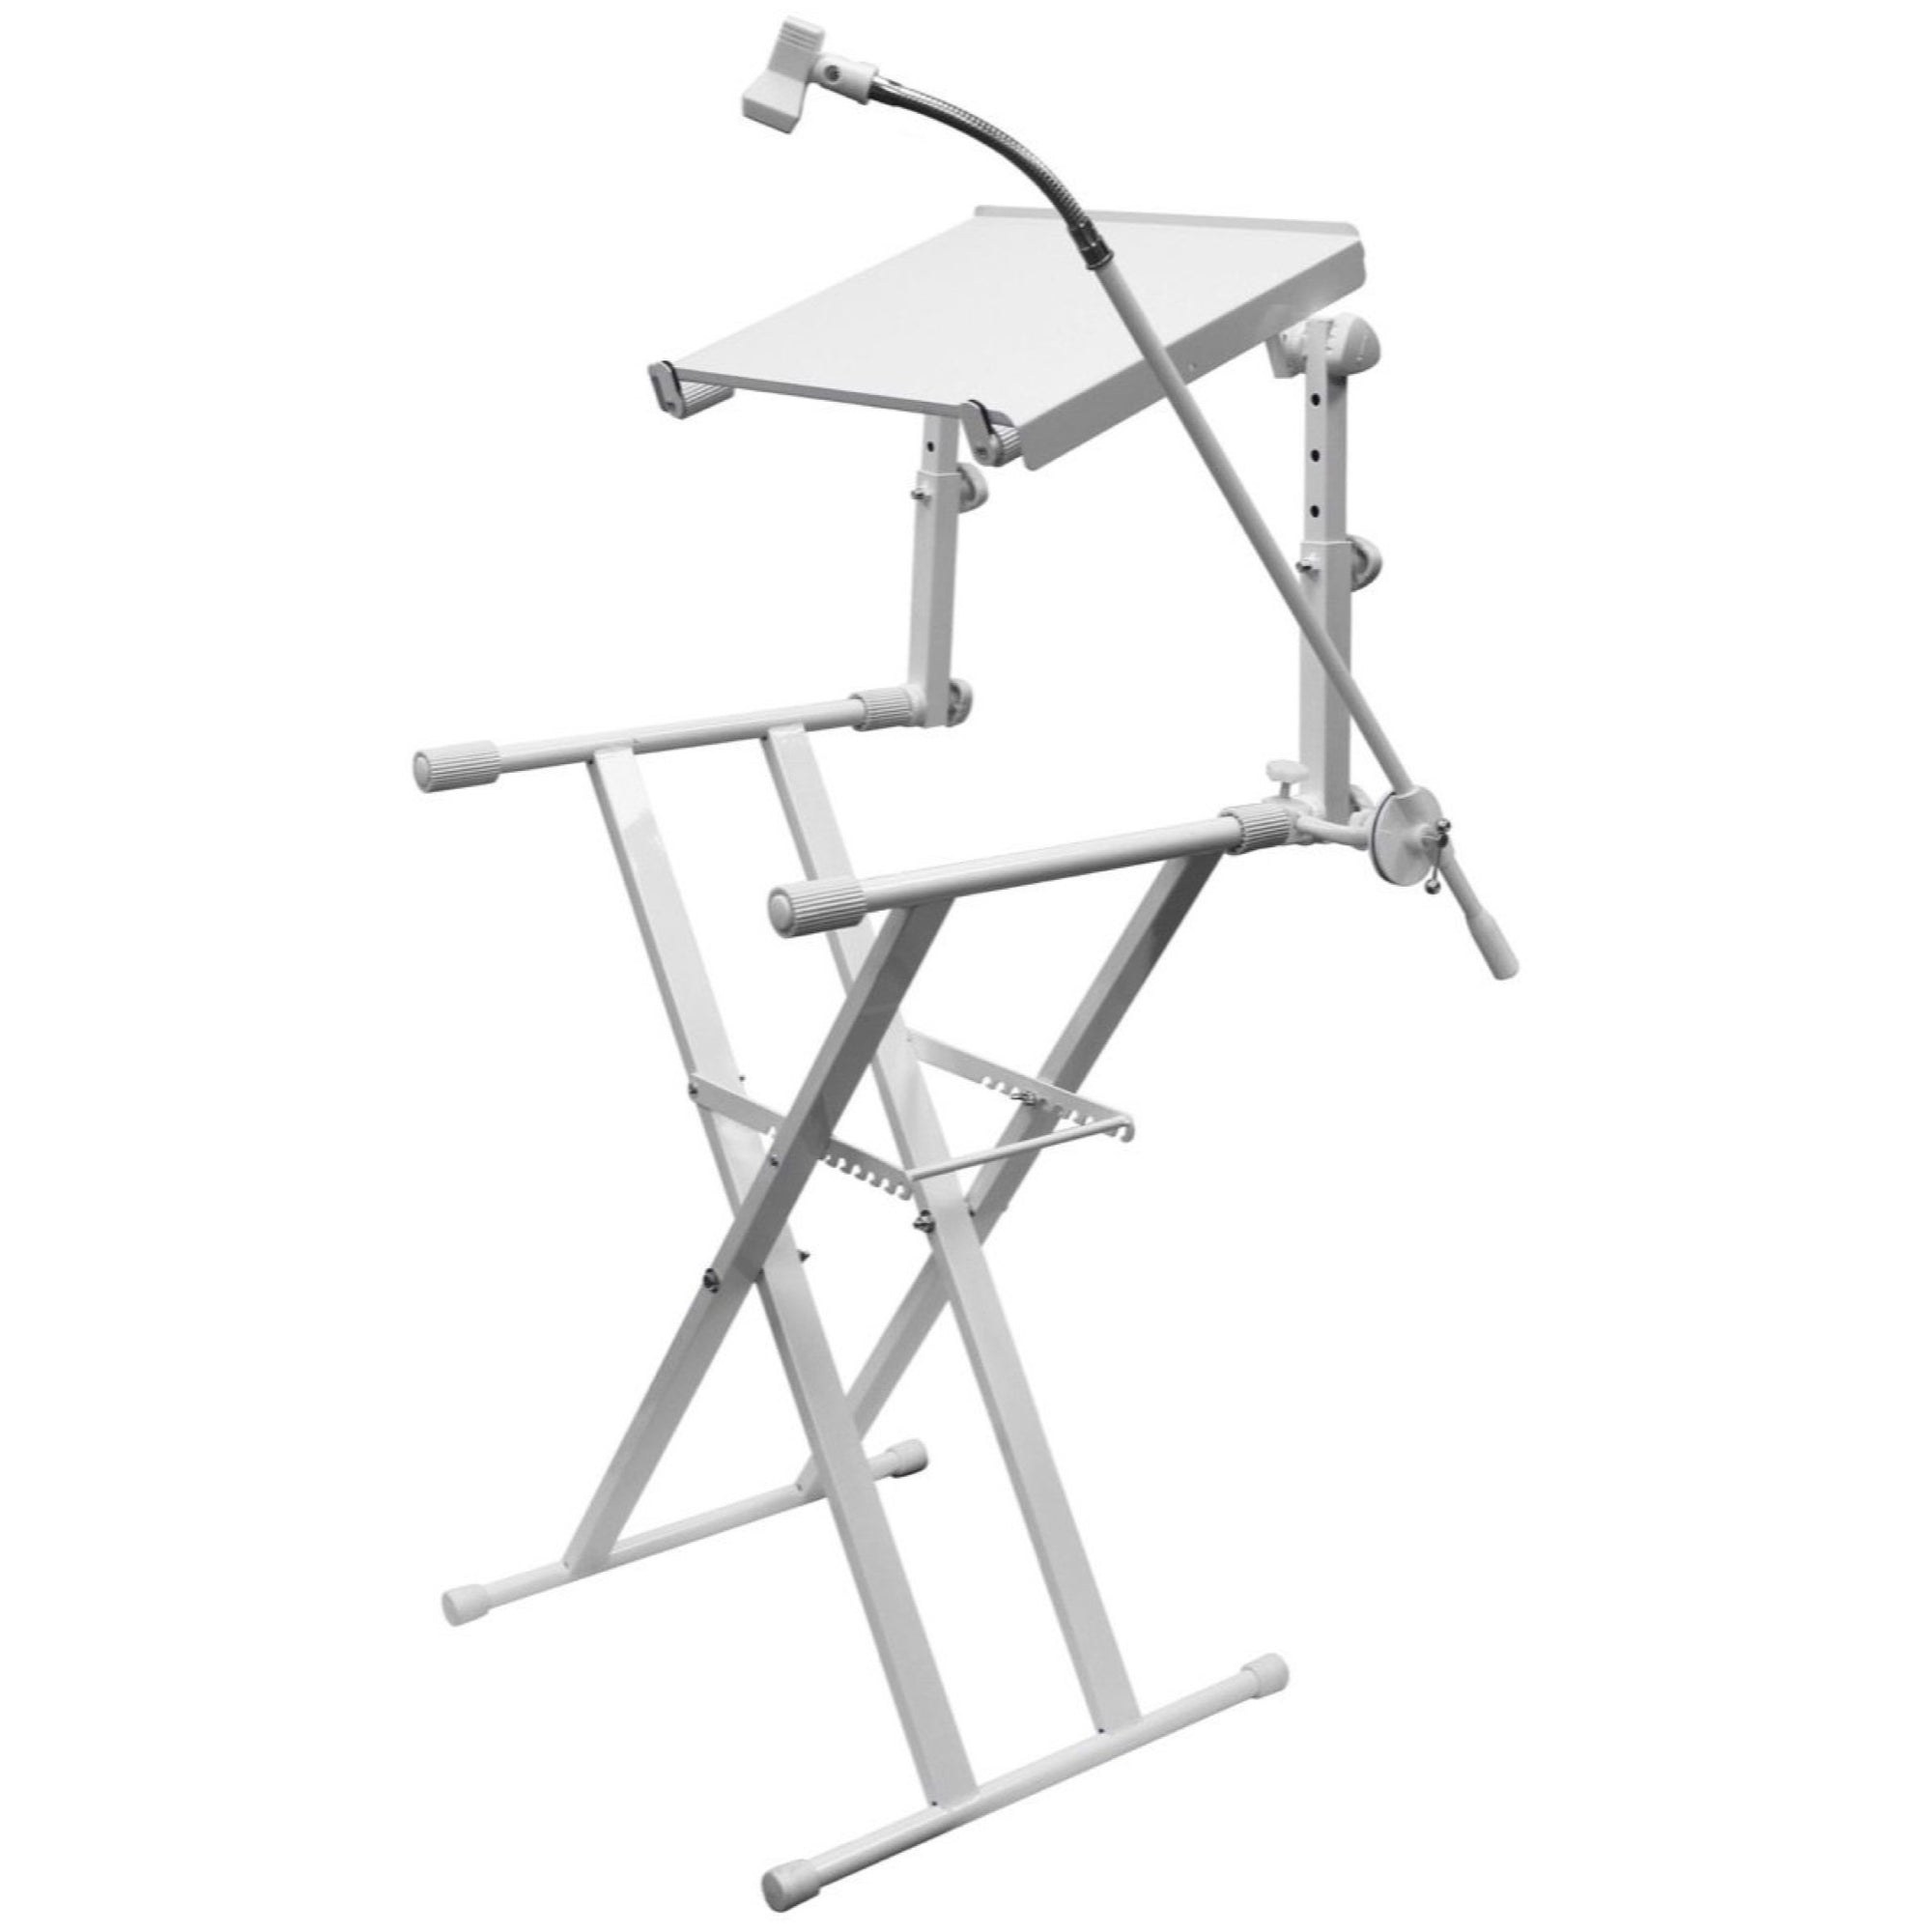 Odyssey LTBXS2MTCP 2-Tier DJ X-Stand Combo Pack, White